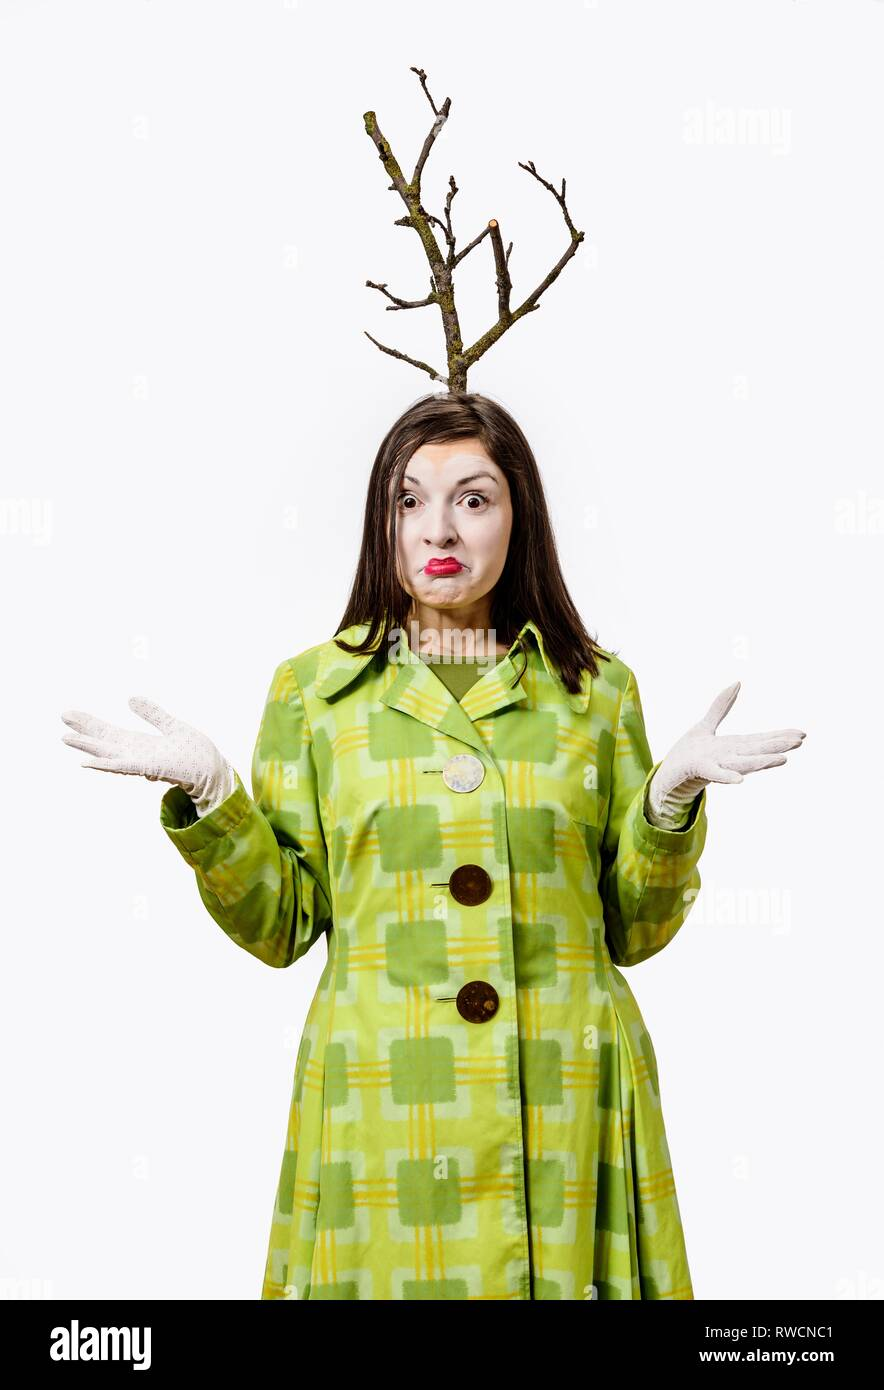 Happy clown standing in suit and a branch grows from his head, isolated on white background. - Stock Image